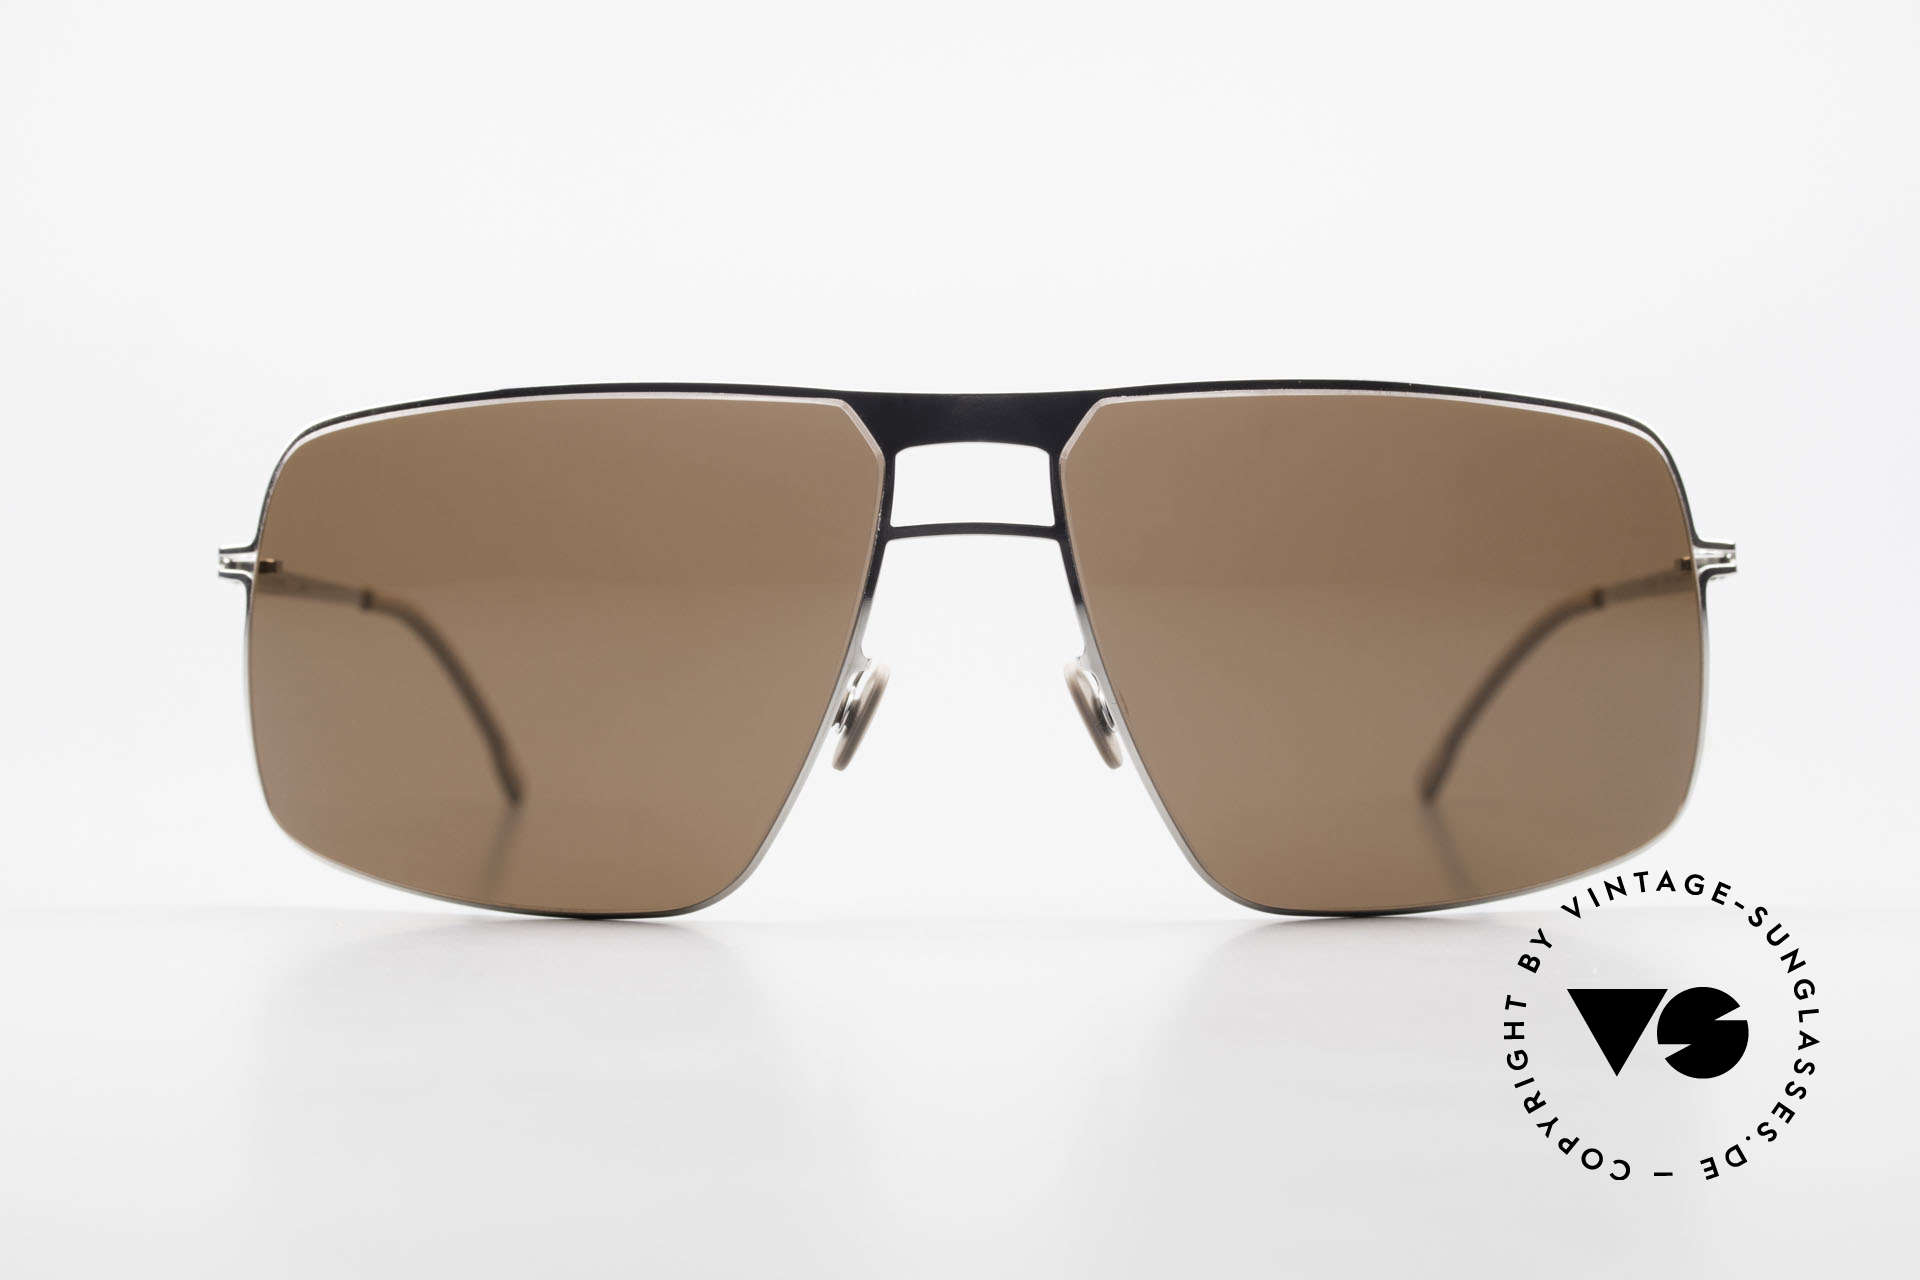 Mykita Leif Men's Designer Sunglasses 2011, MYKITA: the youngest brand in our vintage collection, Made for Men